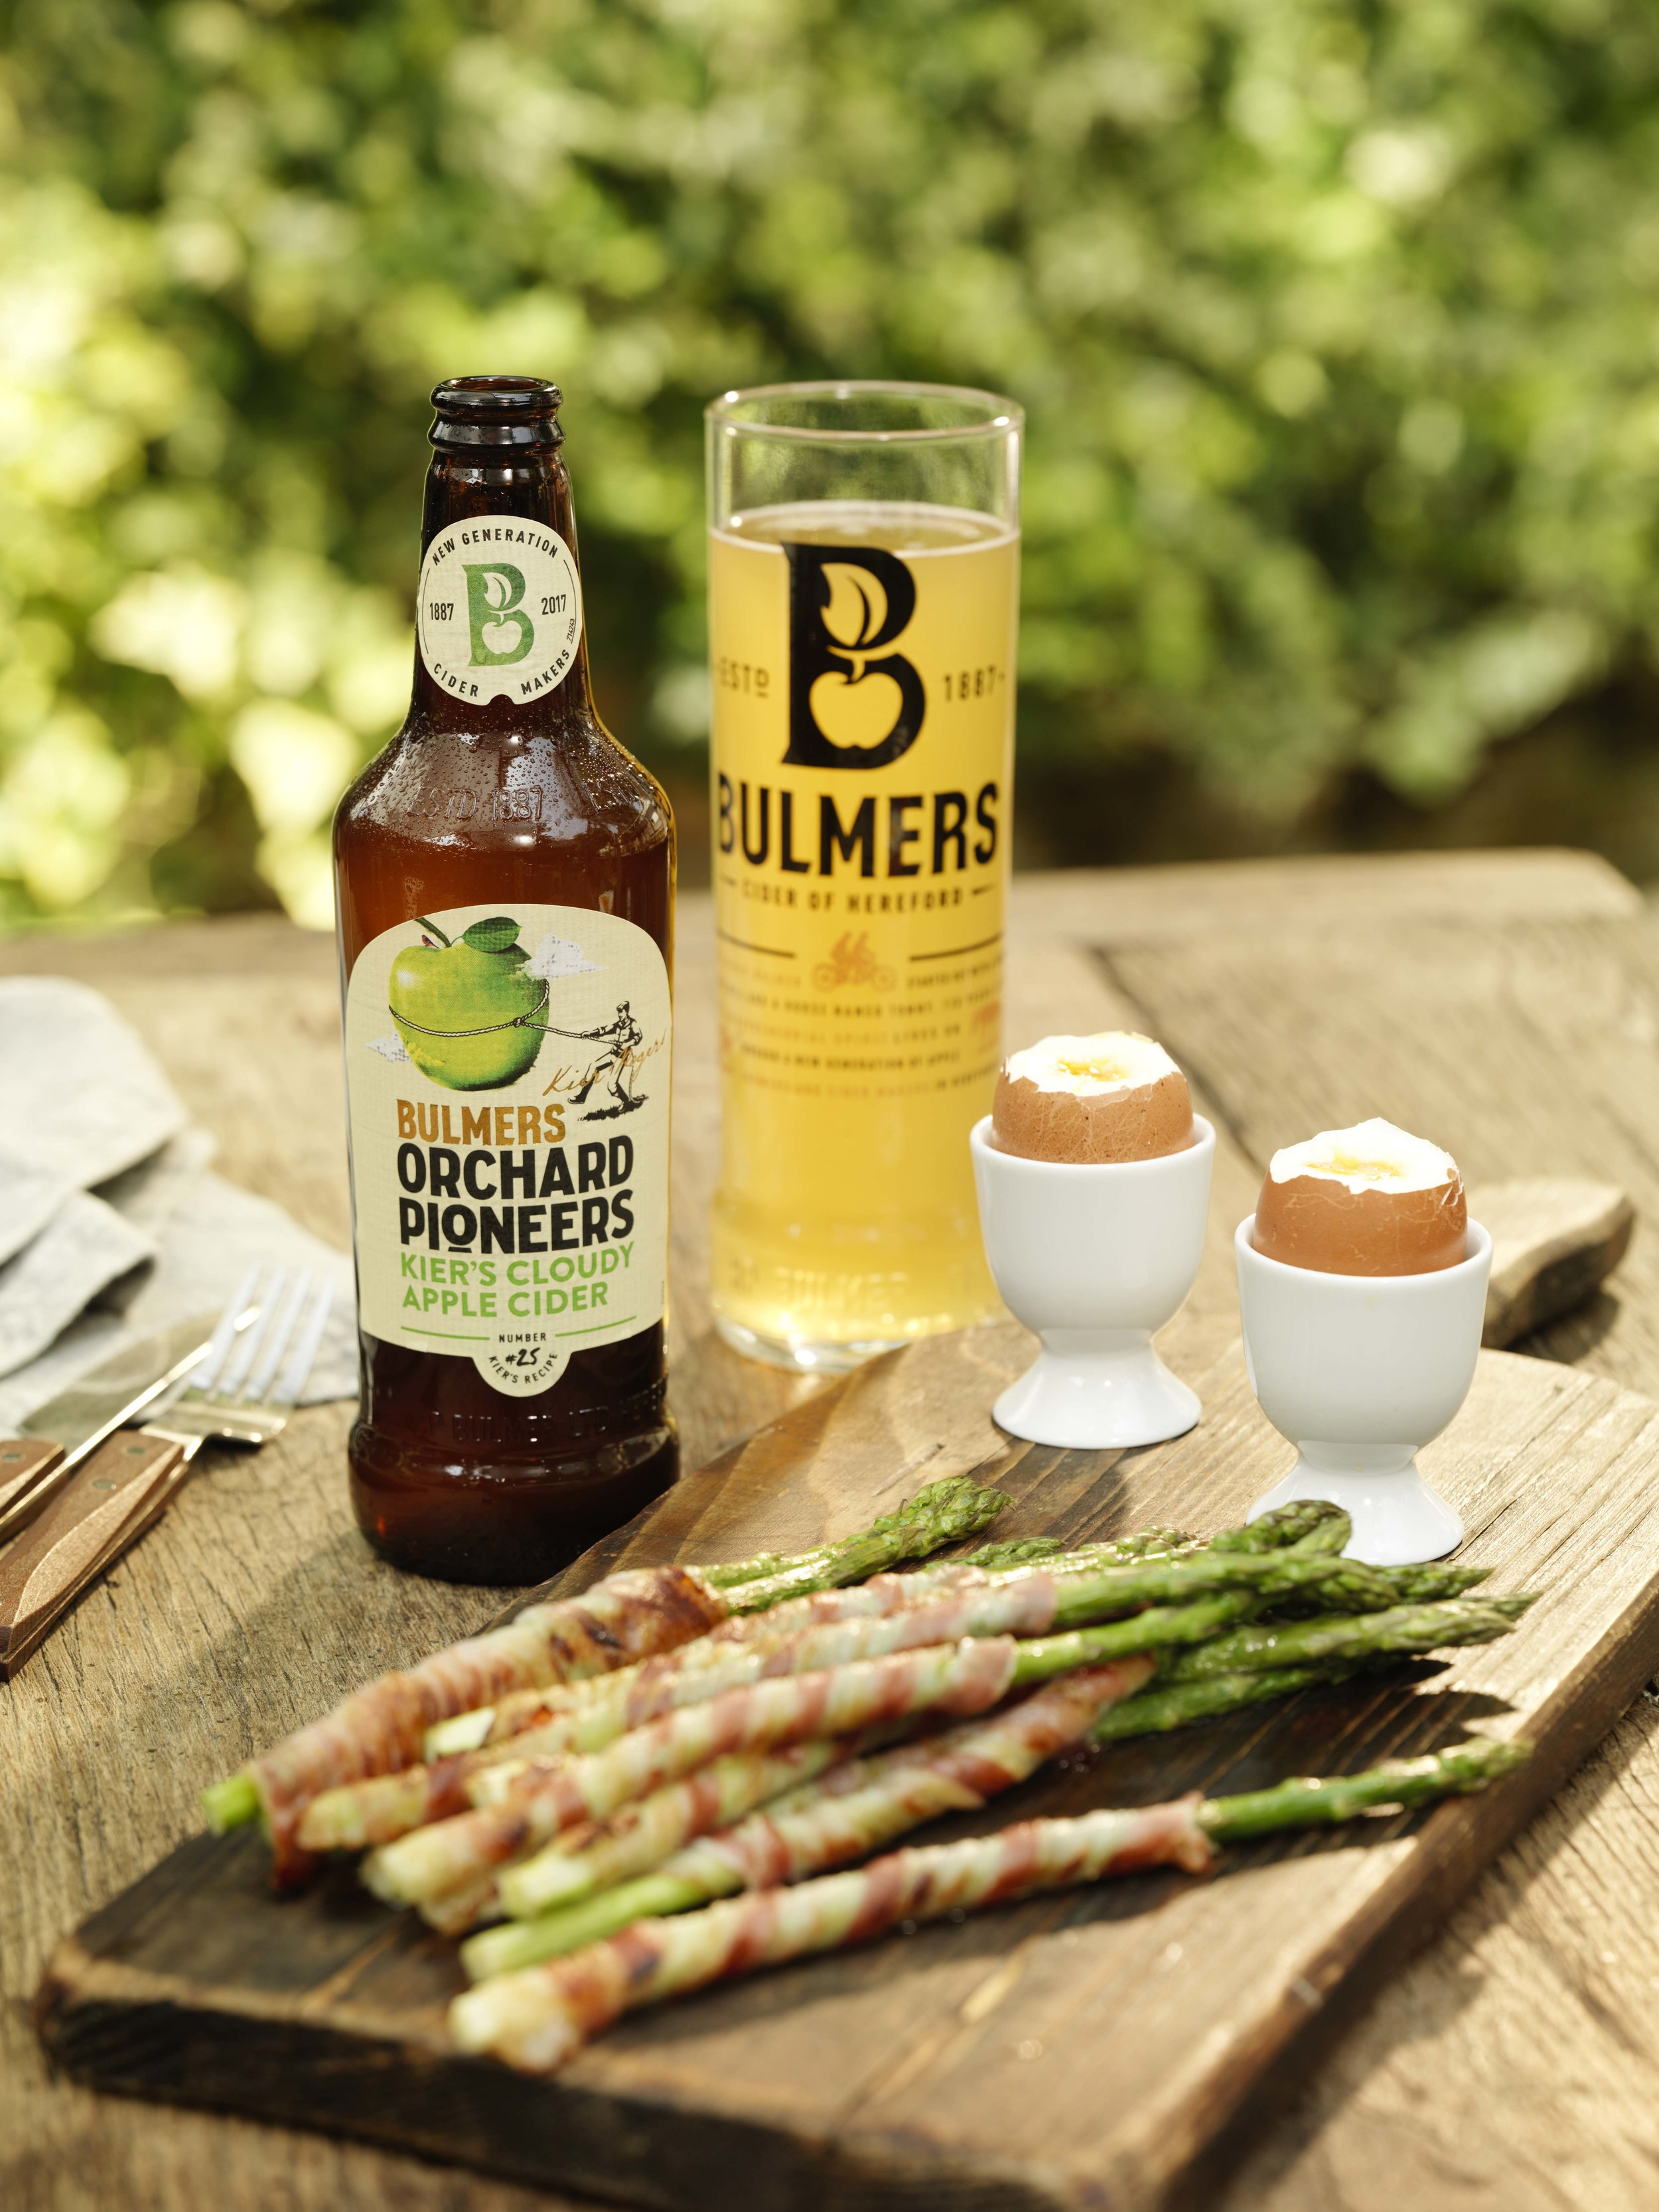 DH&Co-Drinks-Photography-Bulmers-Advertising-Cider-2.jpg